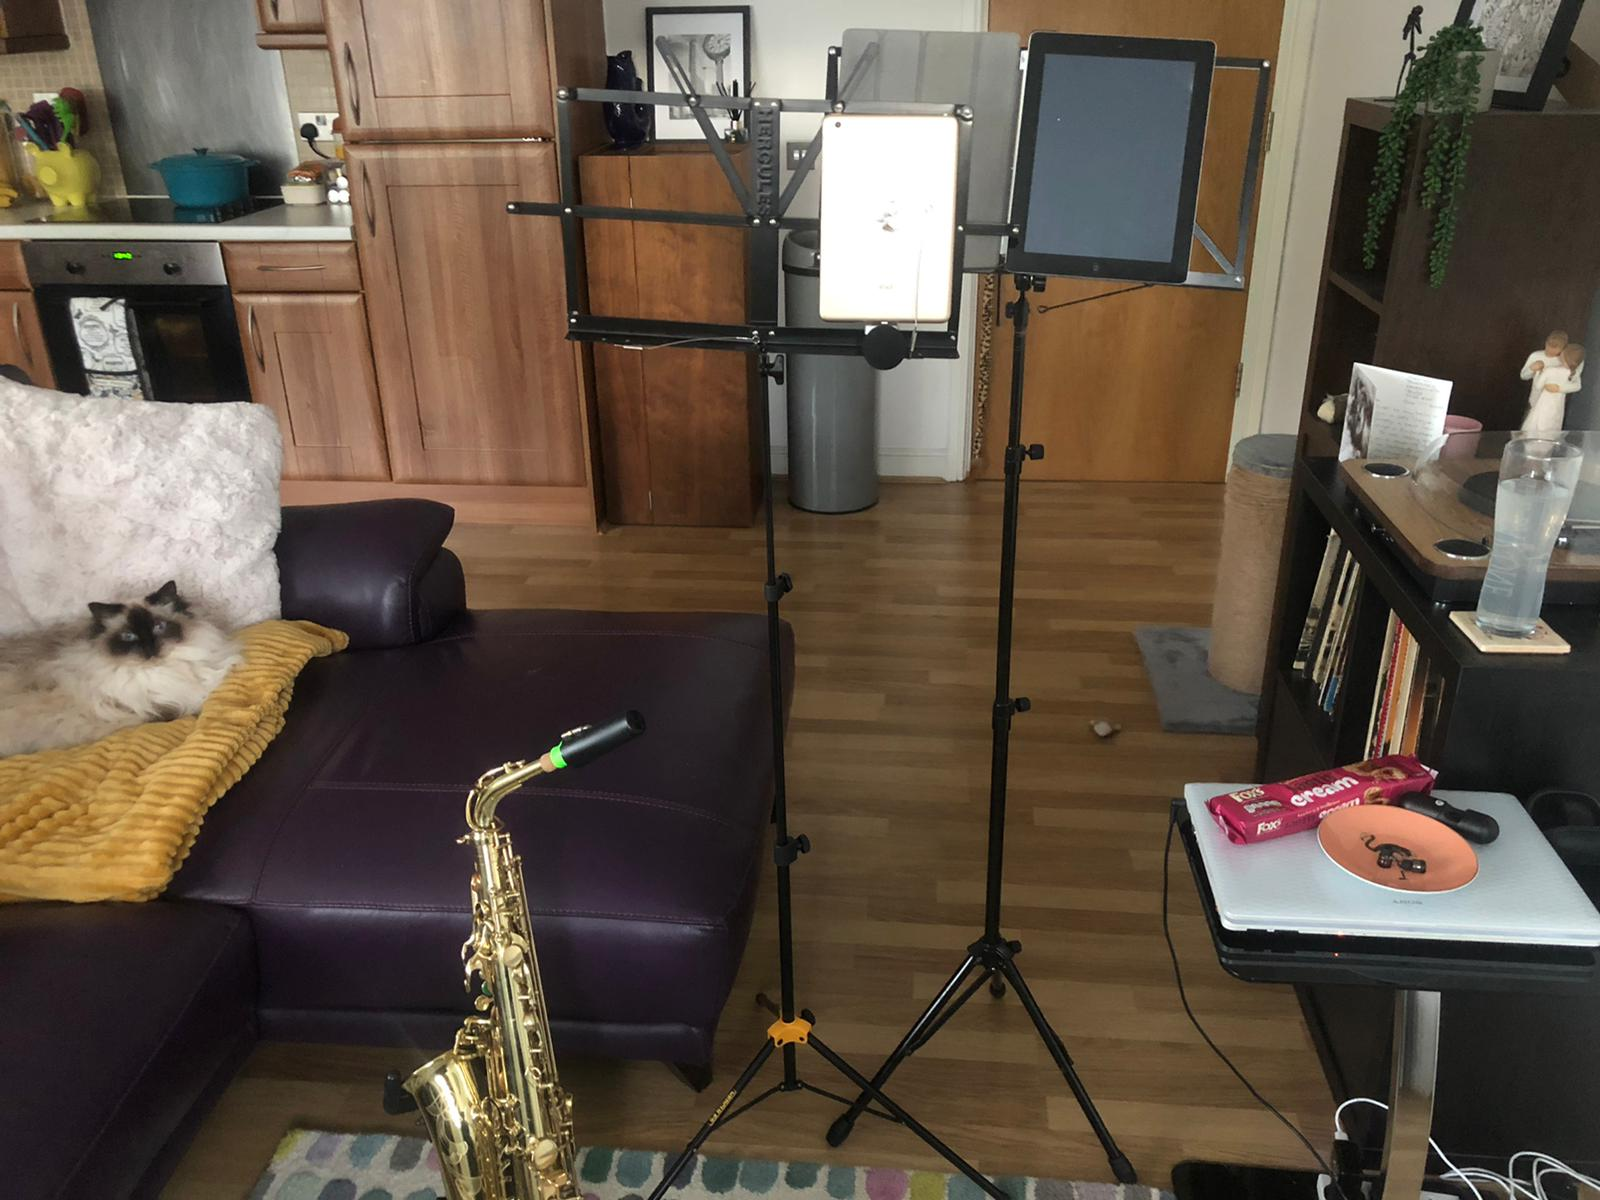 The People's Orchestra saxophonist Manda's home recording set-up.